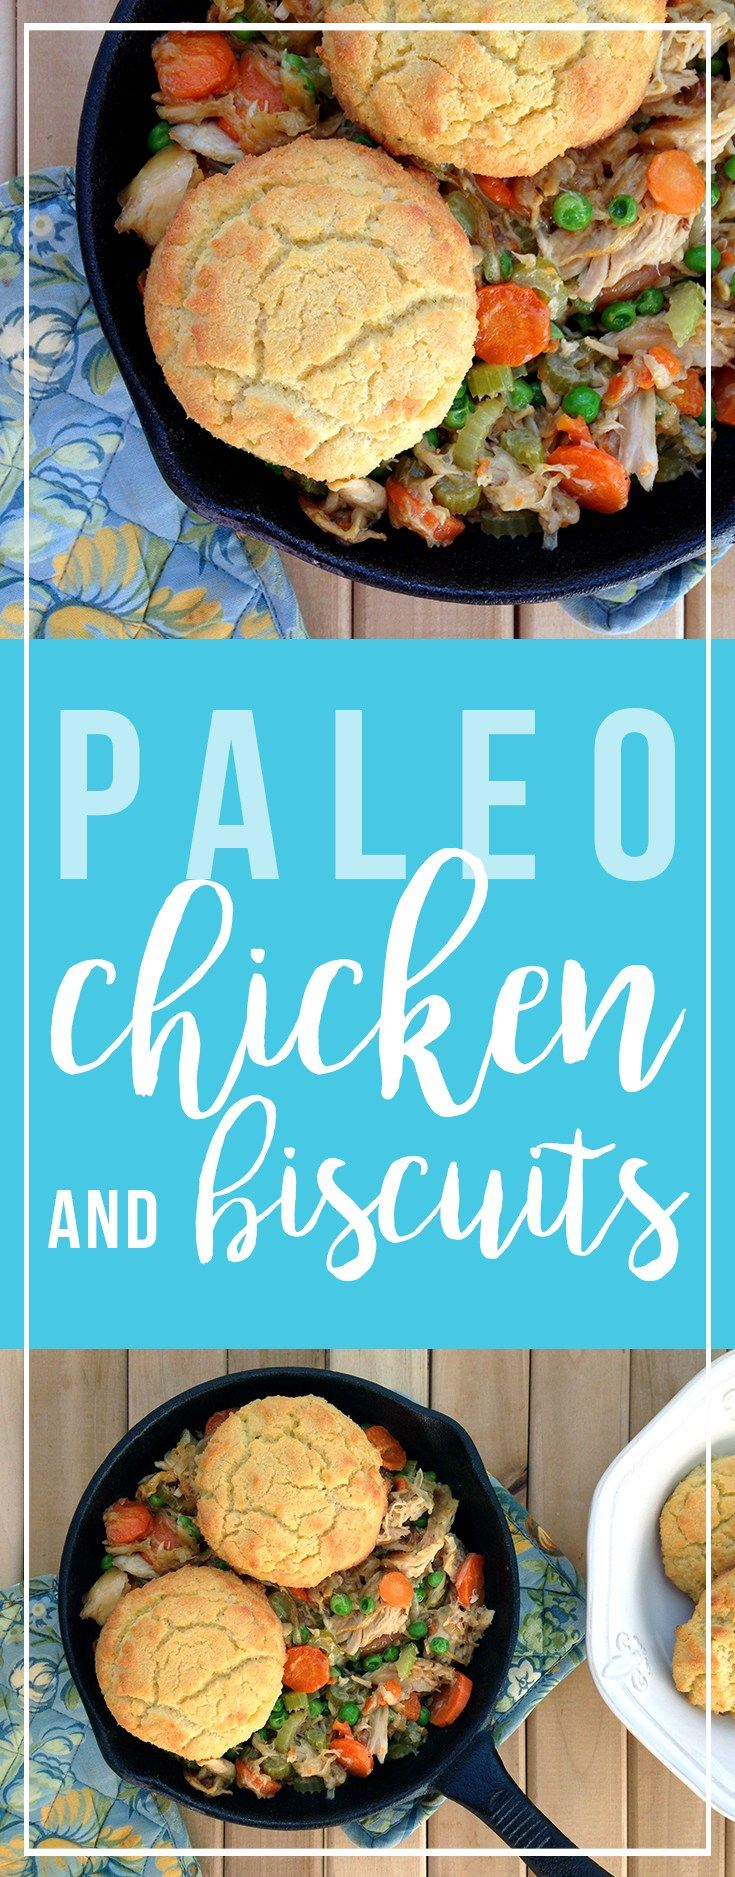 Paleo Chicken and Biscuits